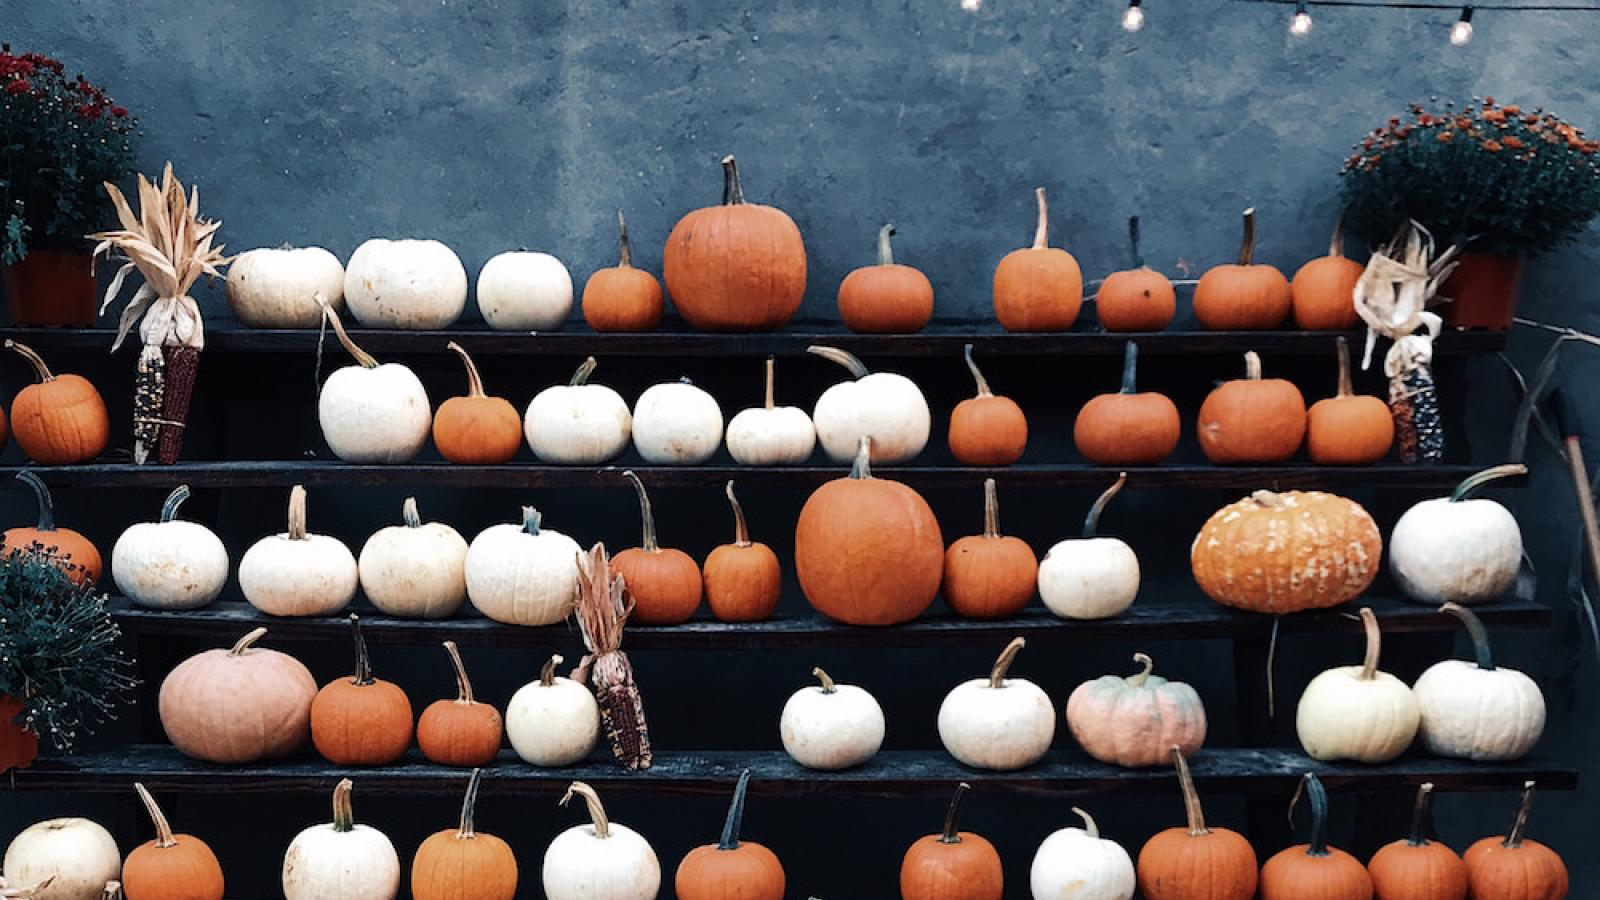 rows of brown and white pumpkins on a stand and on the ground in front of the stand